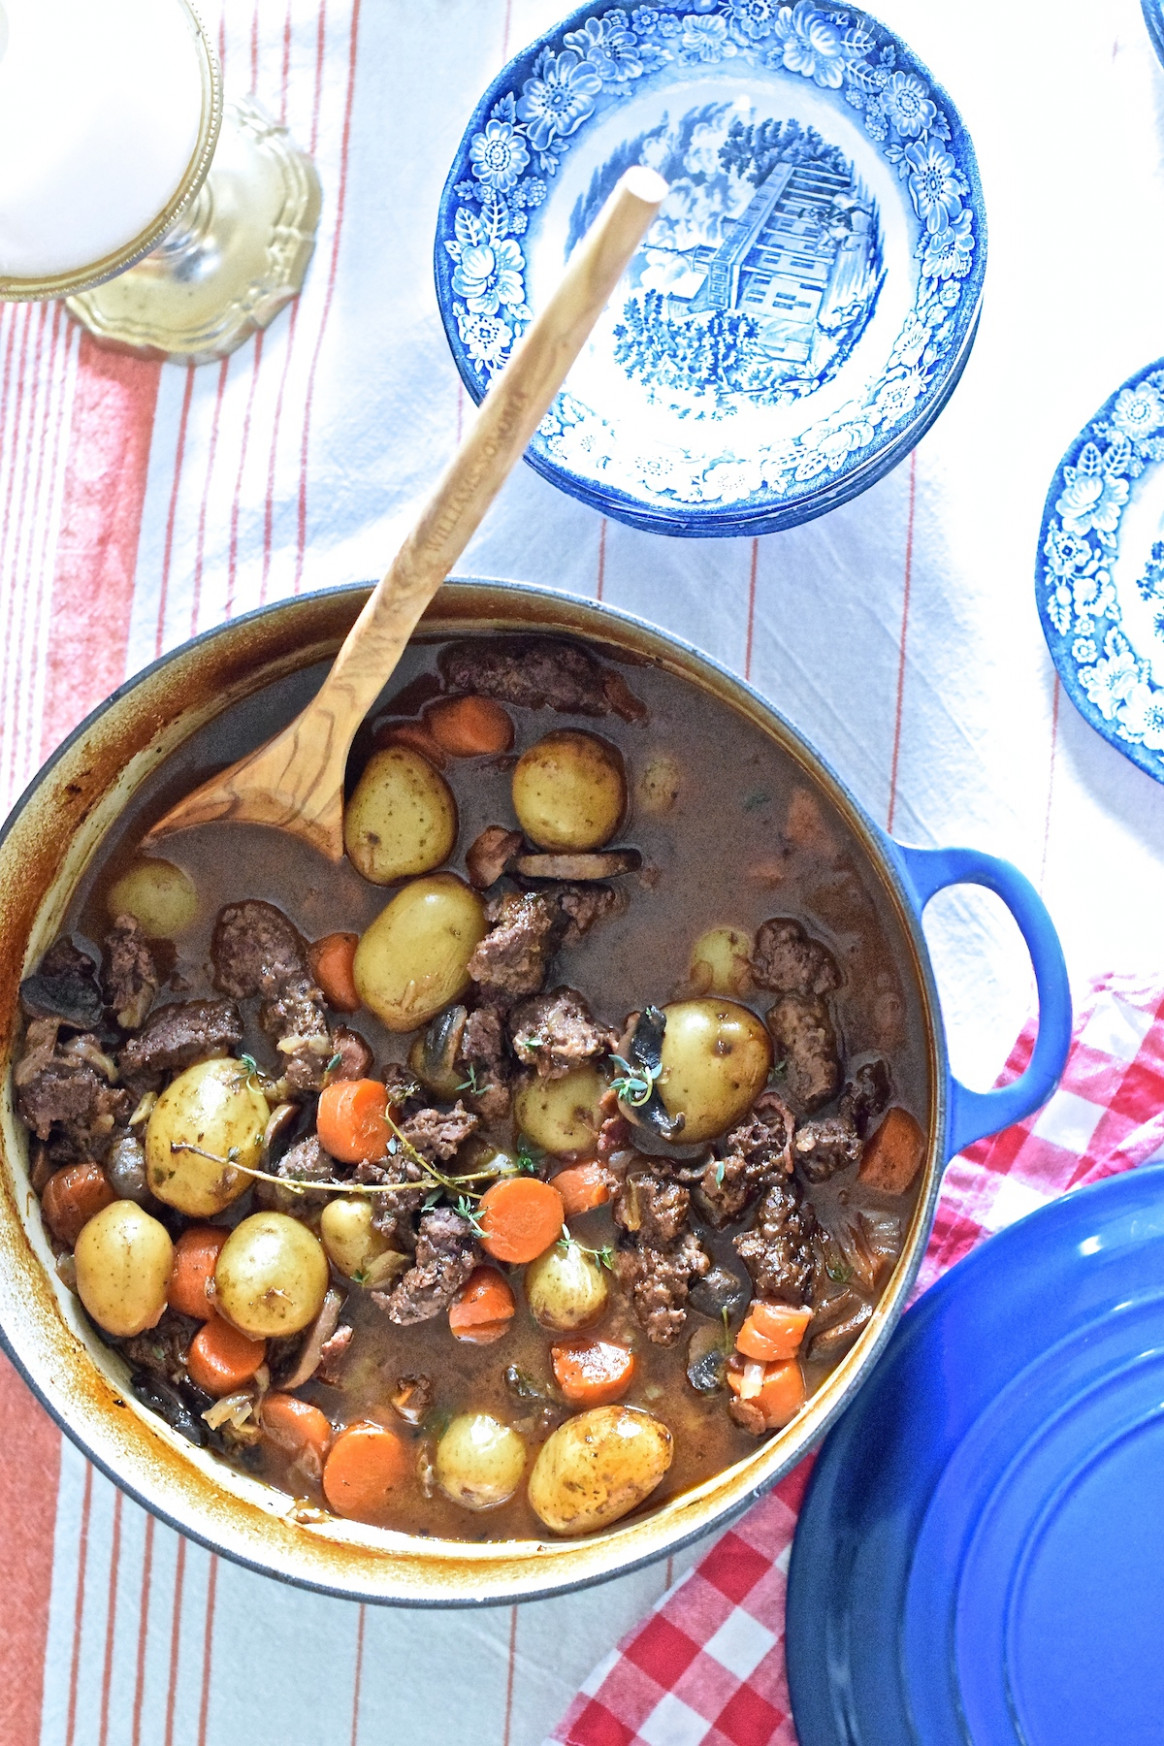 Homemade Venison Stew - Darling Down South